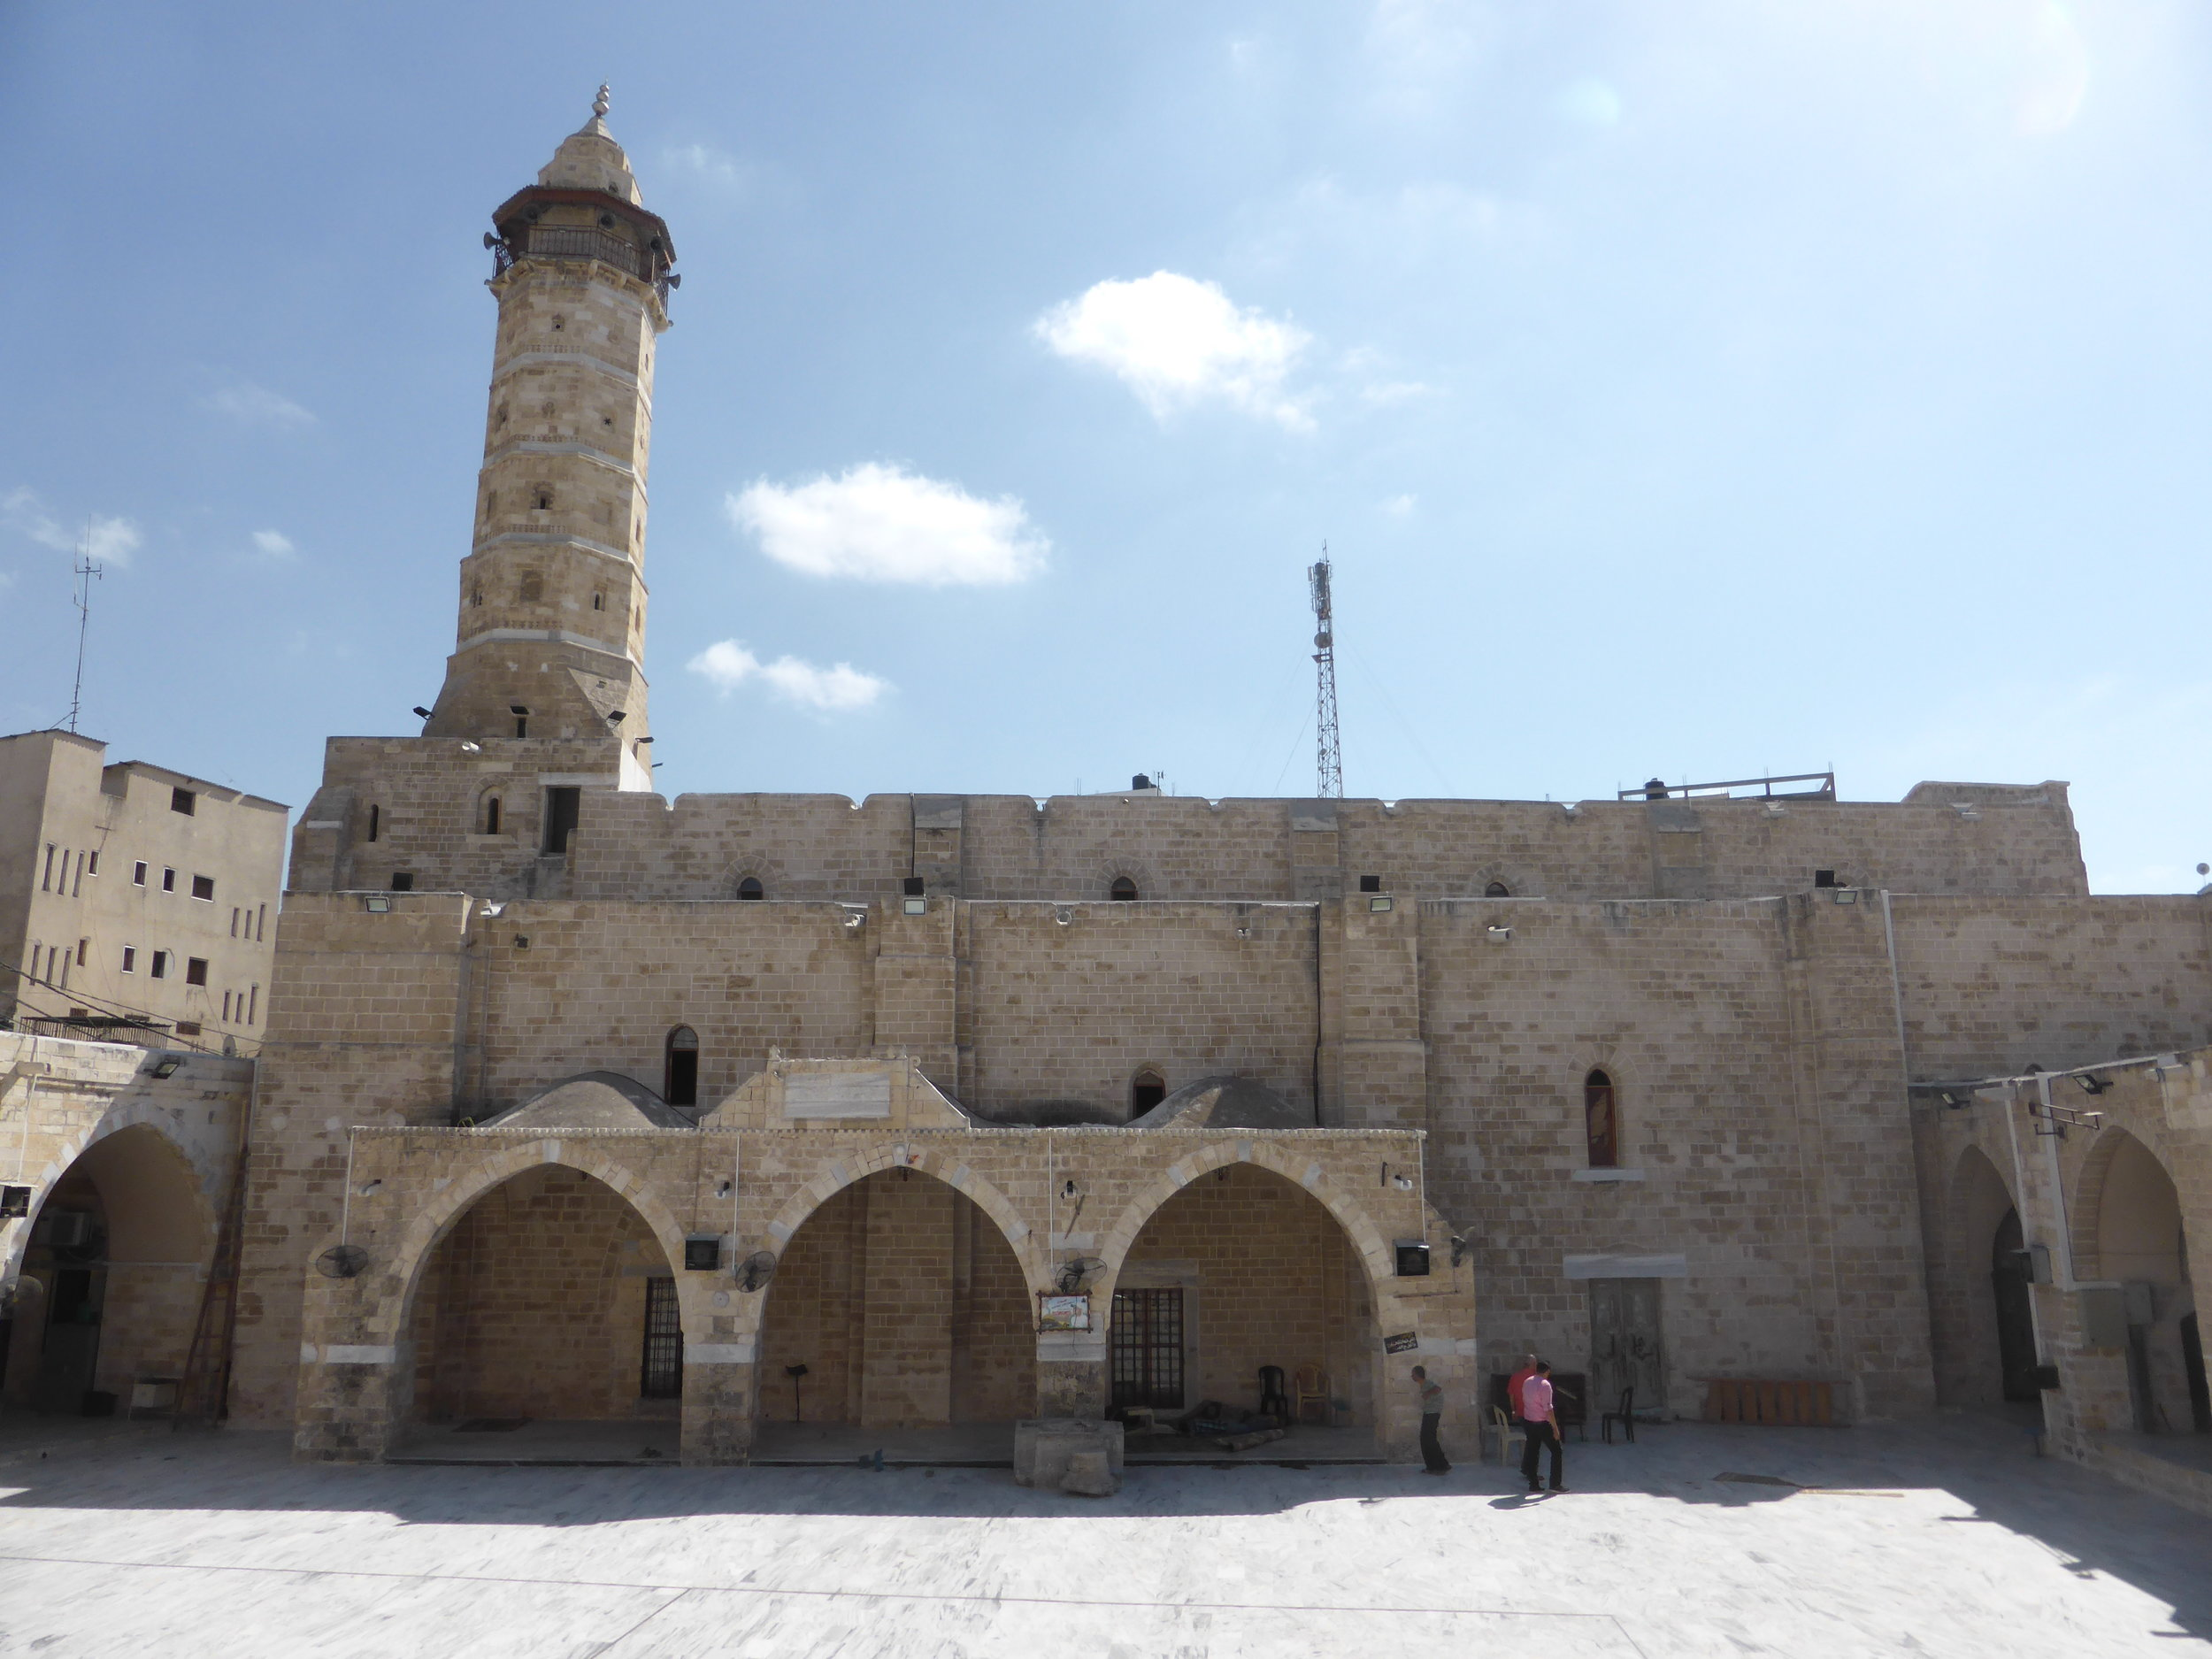 The Great Mosque of Gaza